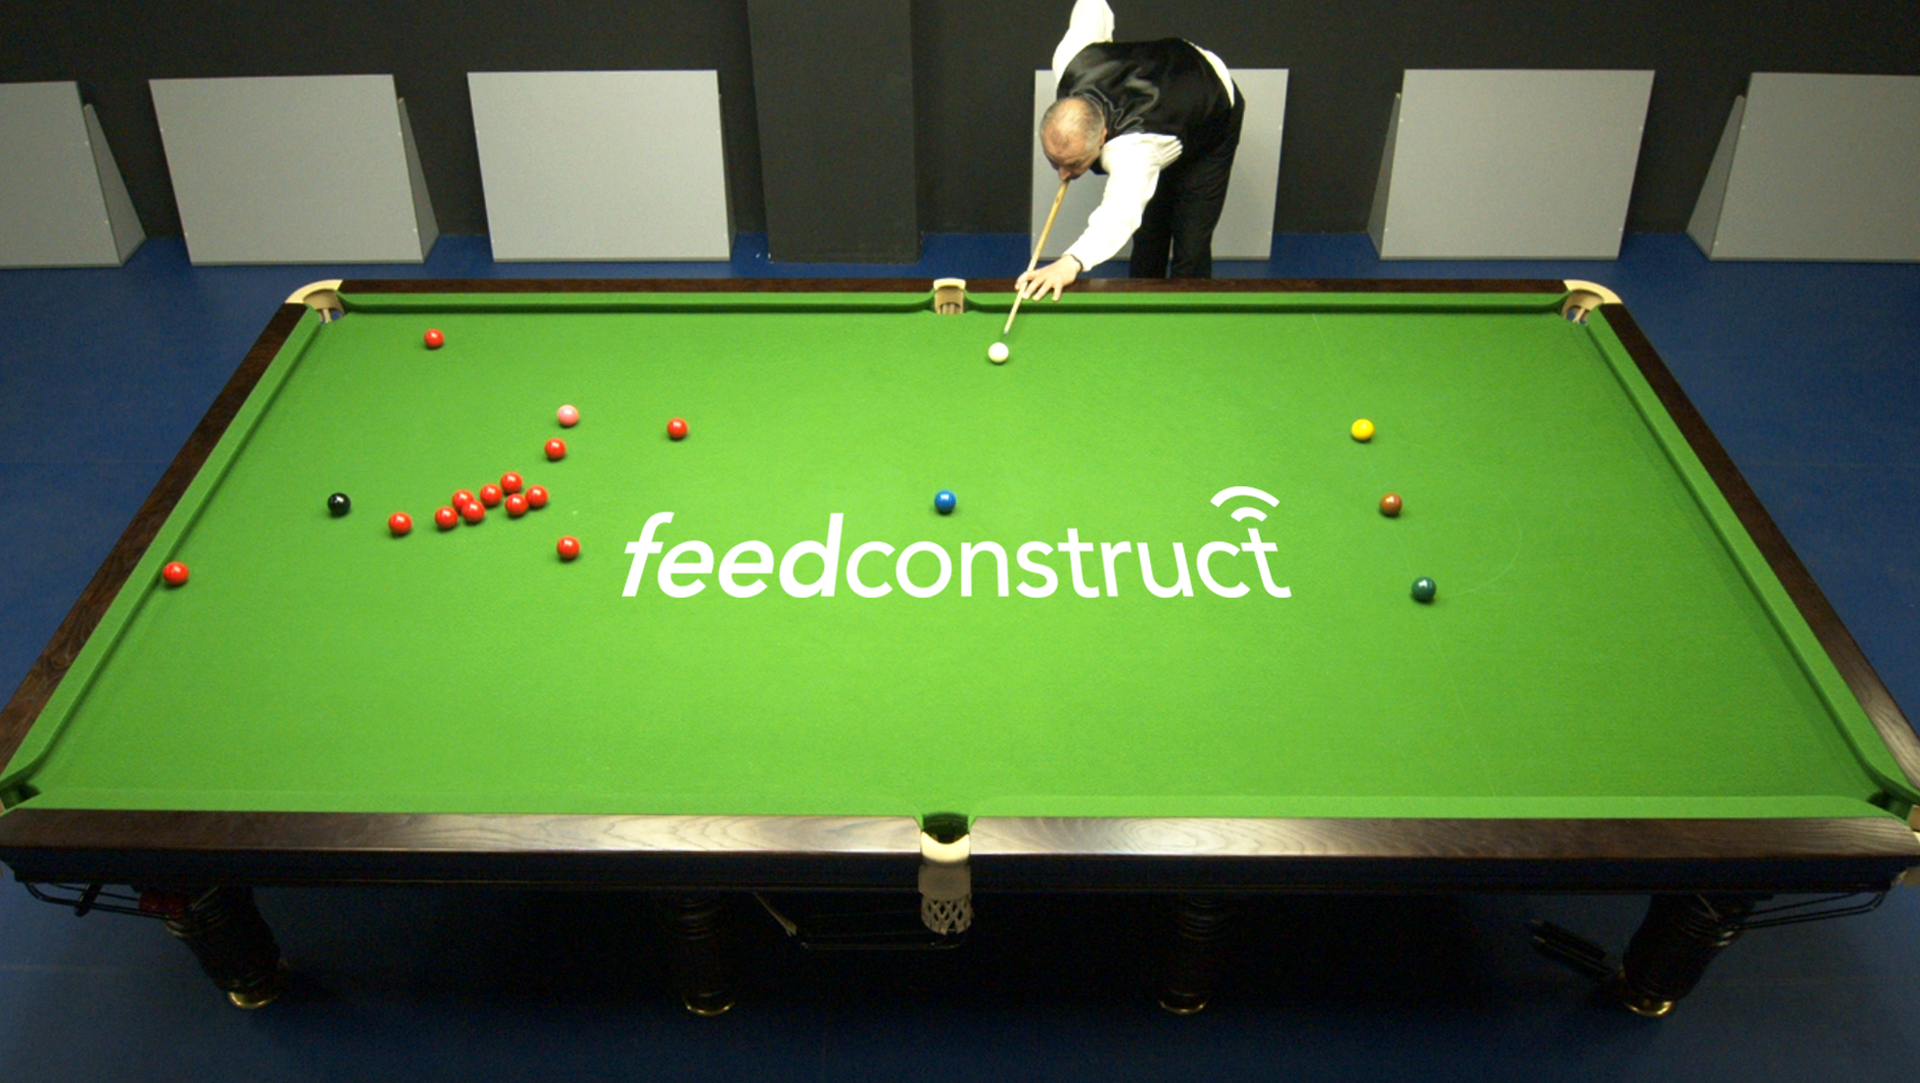 FeedConstruct, adds Snooker to the list of in-house streamed sport types